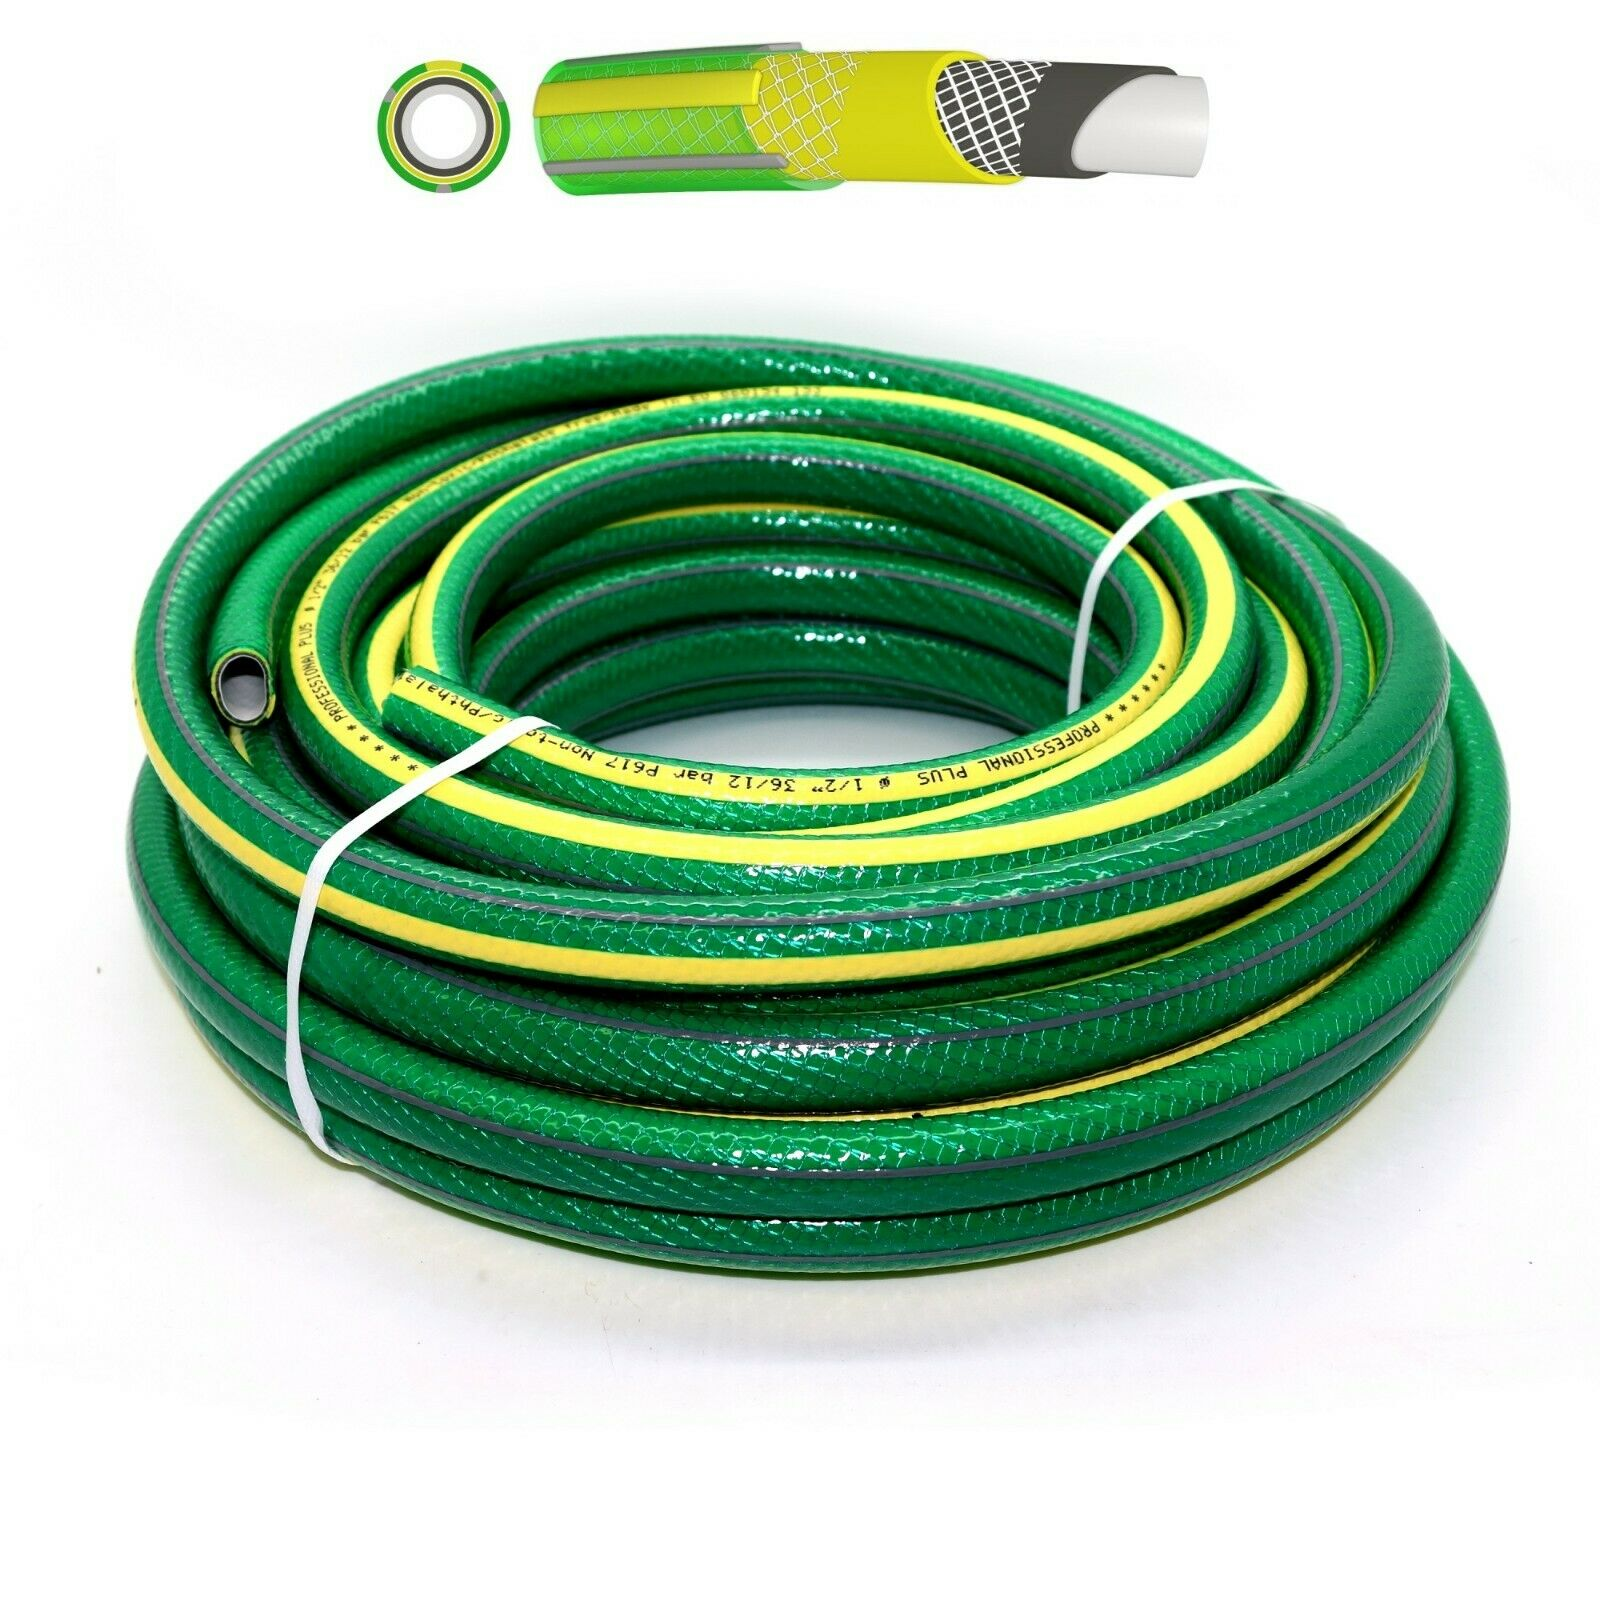 1/2-6 Layer Proffesional Garden Hose Pipe Reel Reinforced Outdoor Hosepipe Green